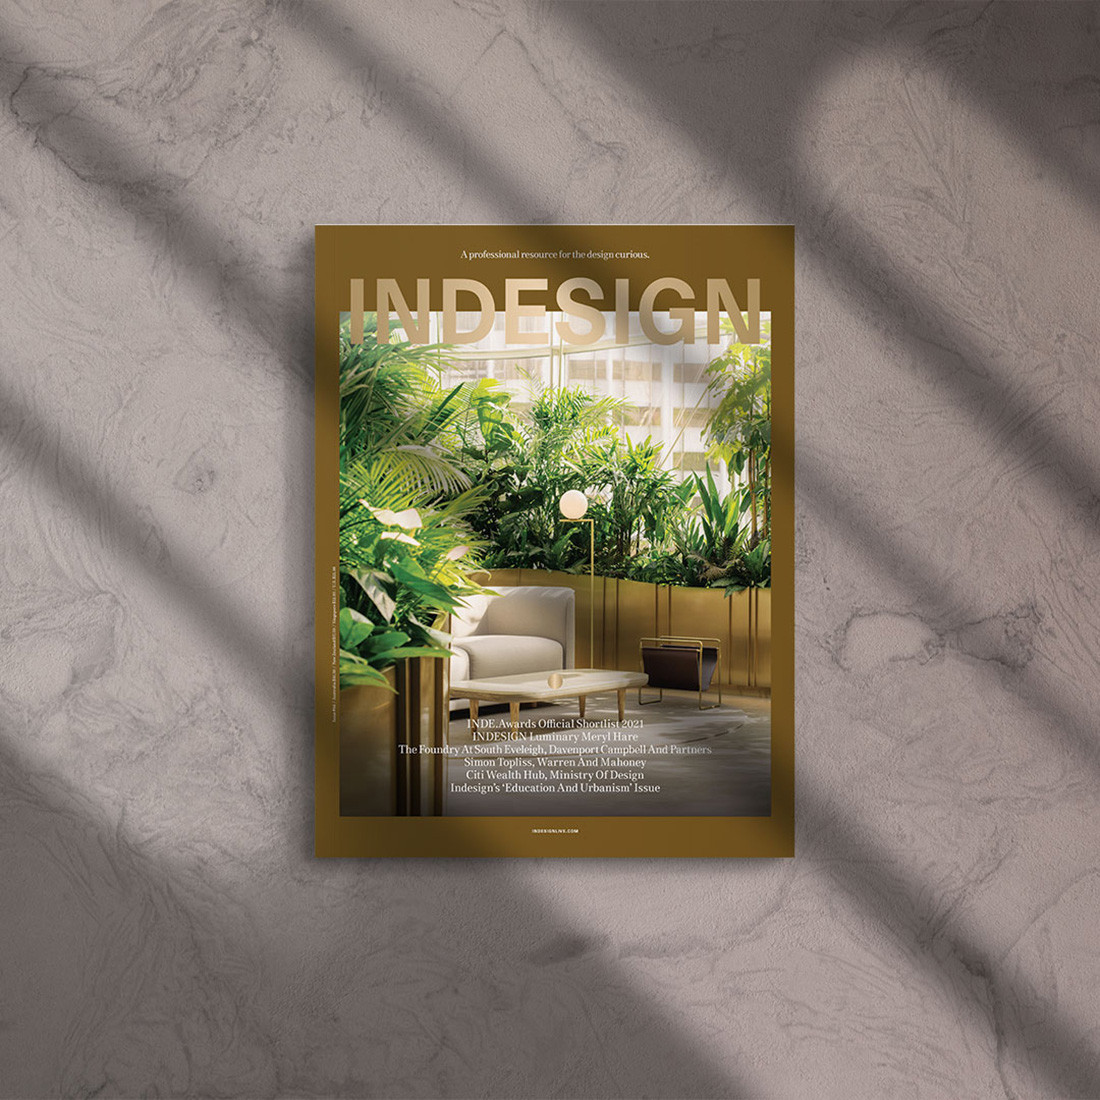 Indesign #84 looks beyond the classroom as simply an environment for teacher and student, to consider the relationship between education and urbanism.